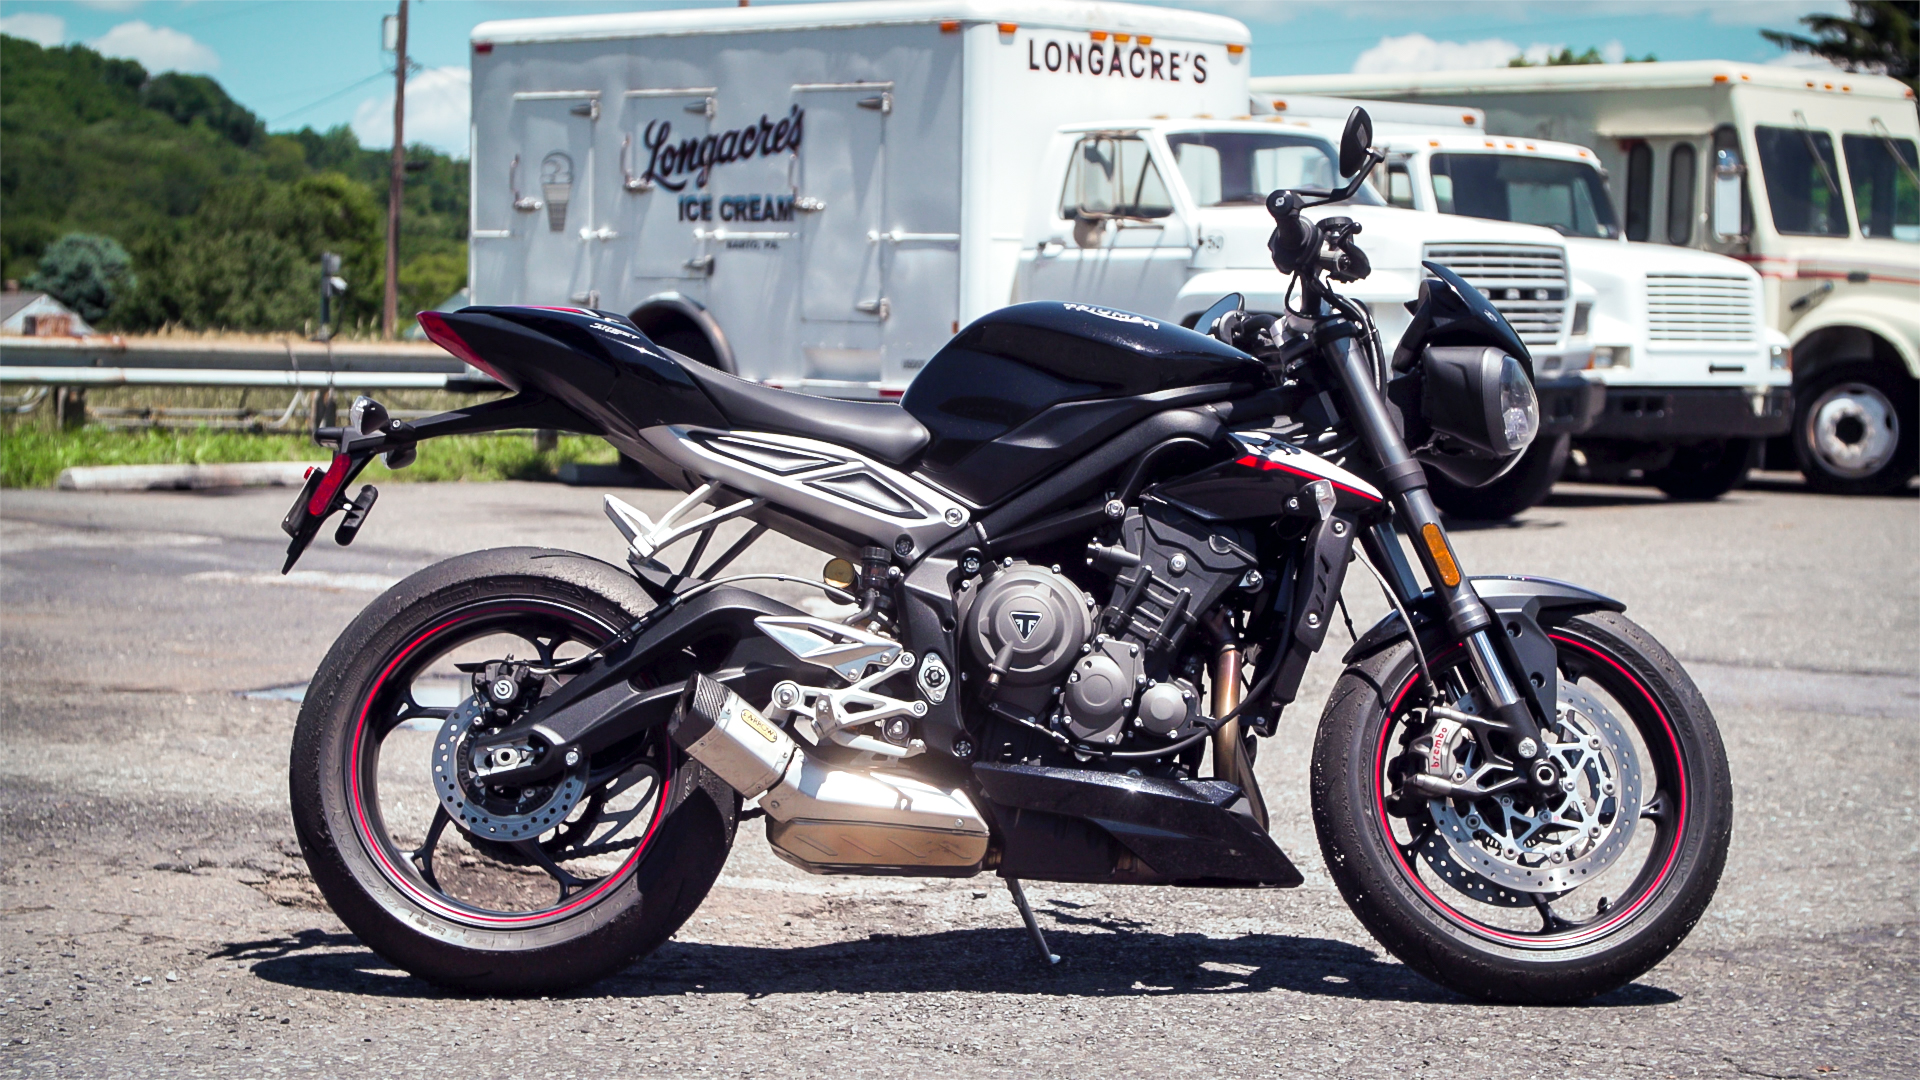 2018 Triumph Street Triple Rs Review Revzilla Style In A 7 Way Rv Wiring Diagram Lighting